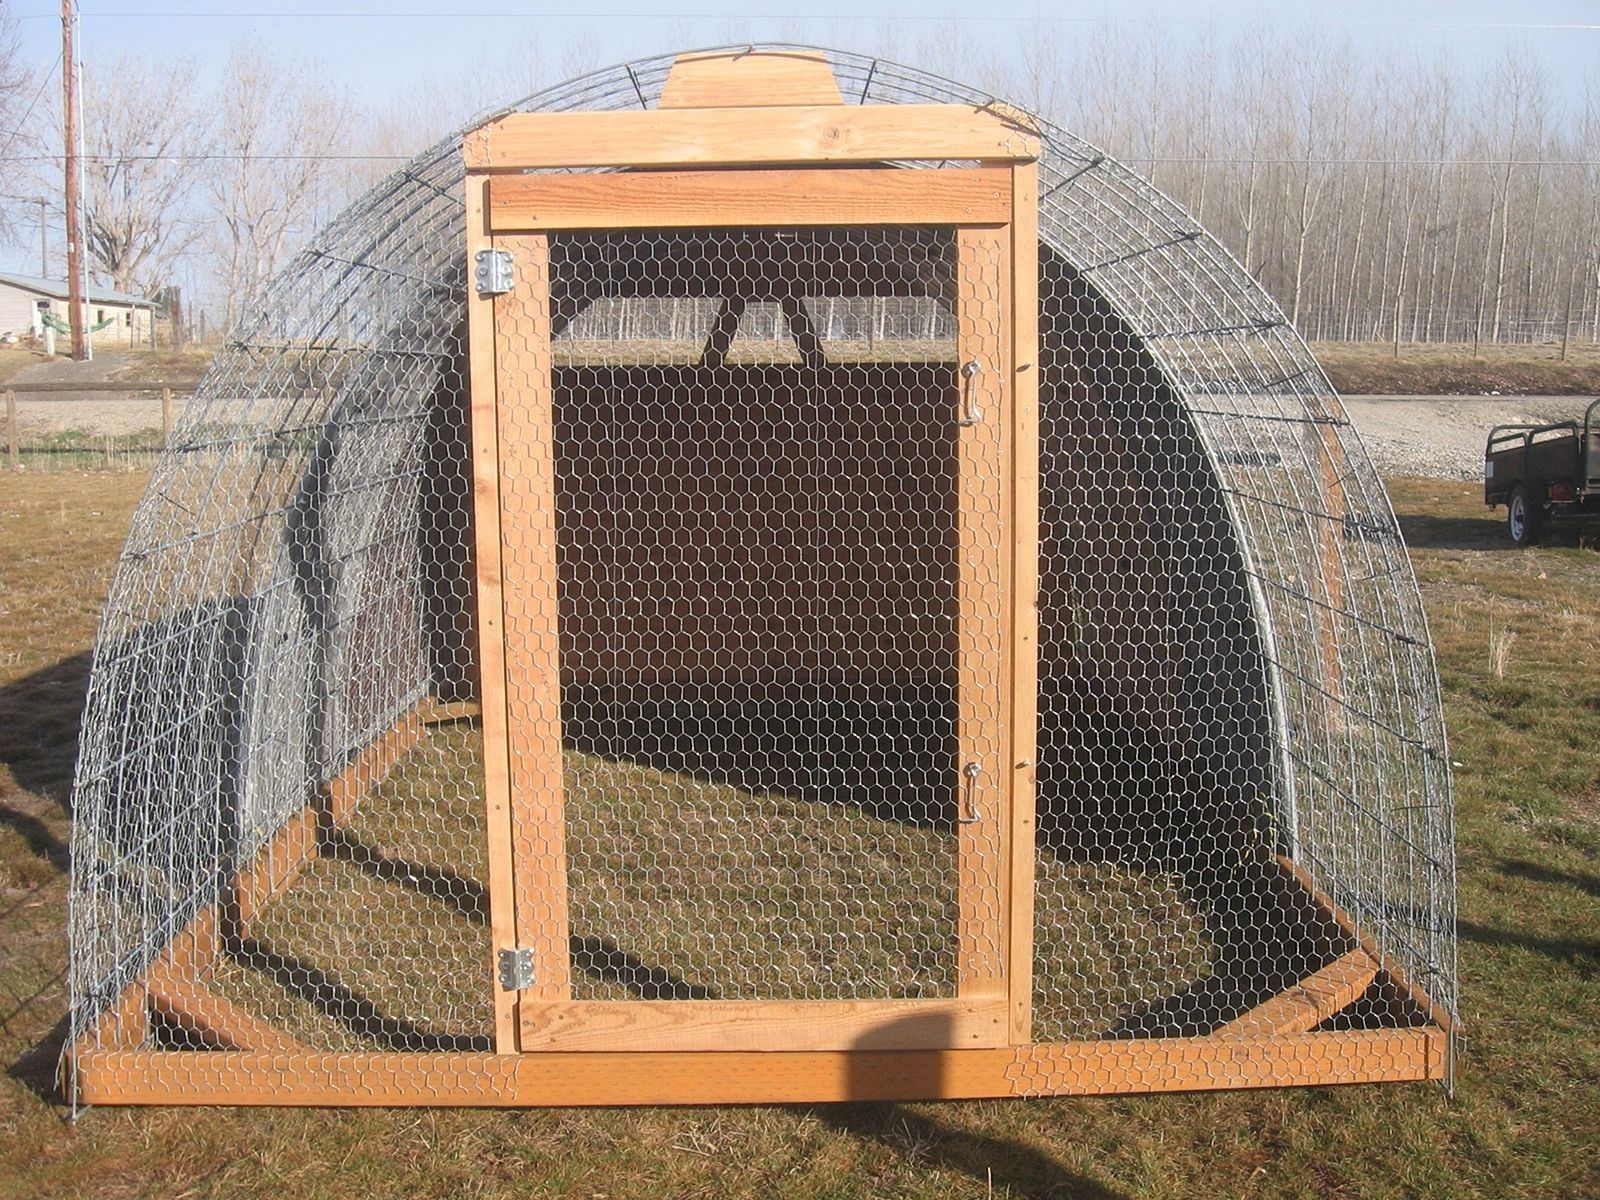 Chicken Coop - The Best 75 Creative and Low-Budget DIY Chicken Coop Ideas for Your Backyard decoredo.com/... Building a chicken coop does not have to be tricky nor does it have to set you back a ton of scratch.